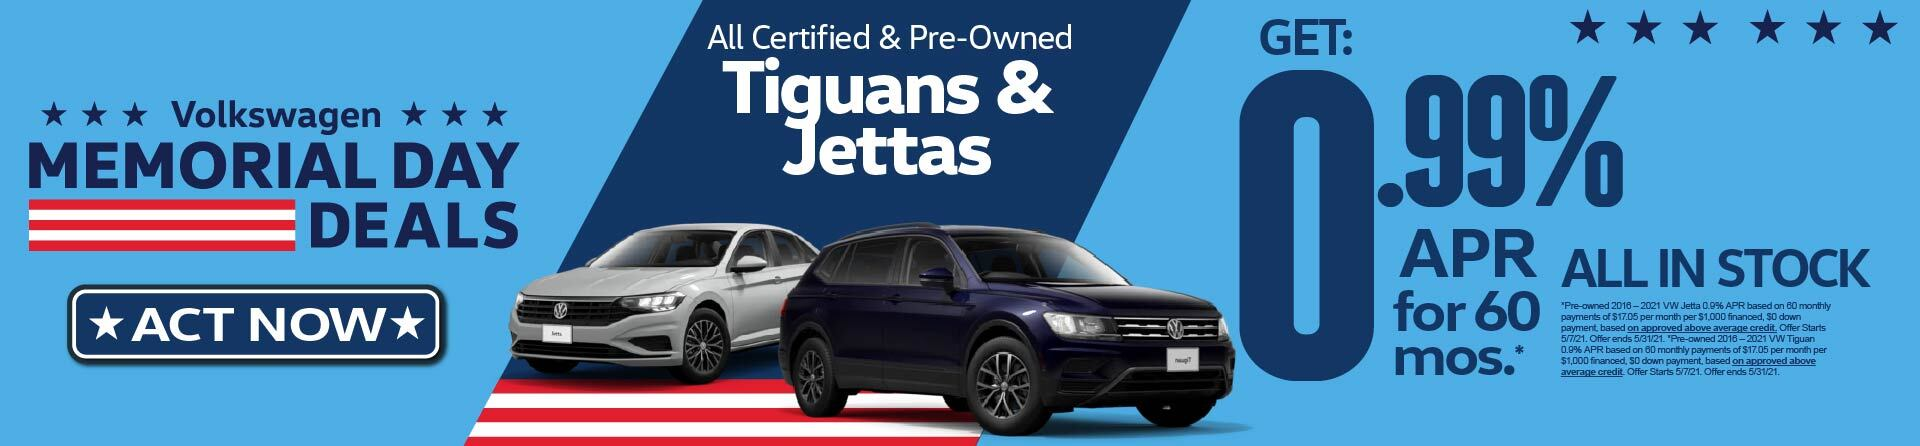 All Certified Preowned Tiguan and Jettas